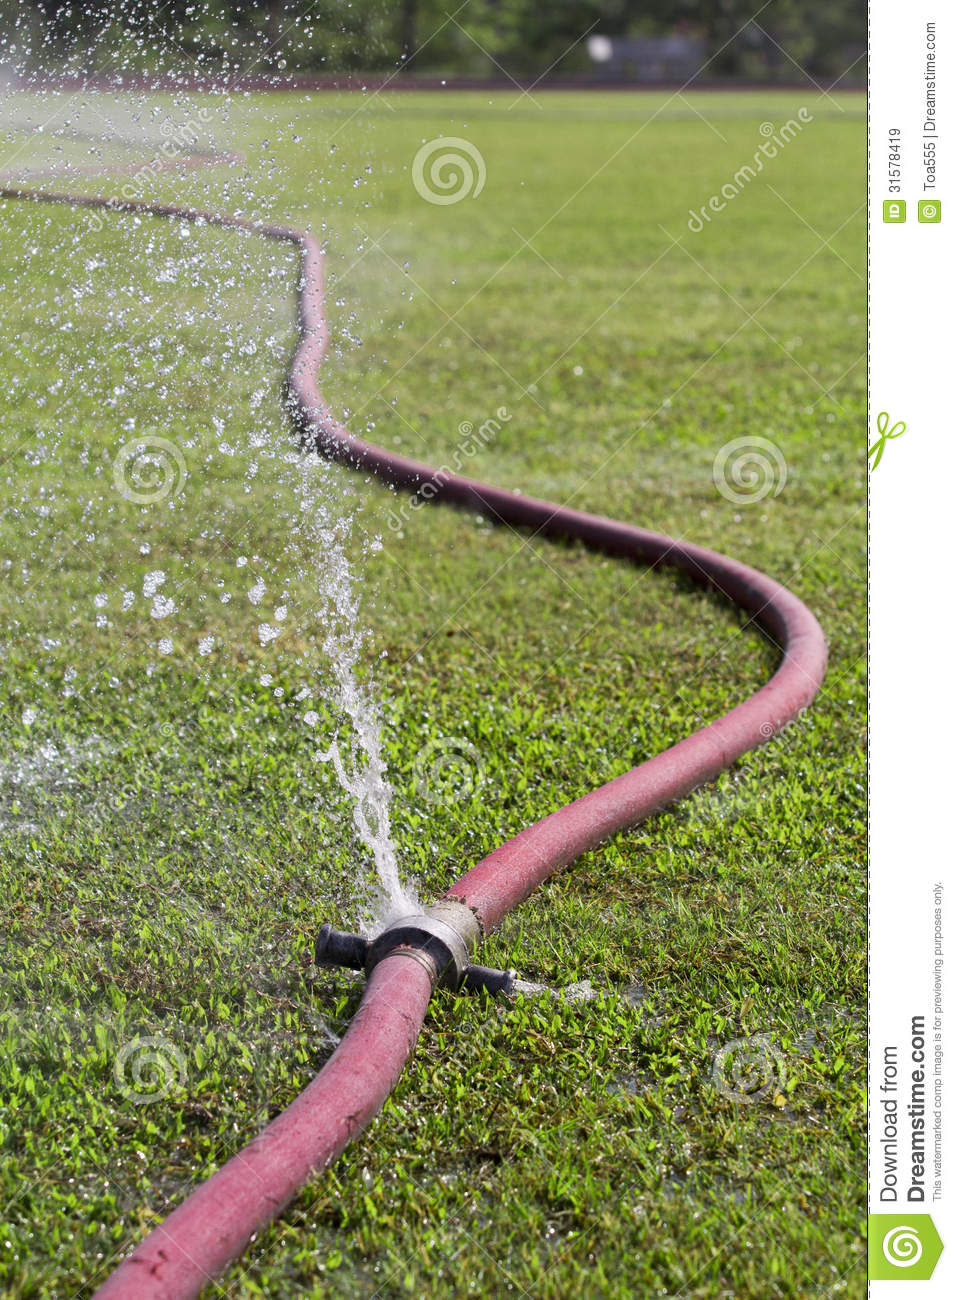 Wasting Water Royalty Free Stock Images - Image: 31578419